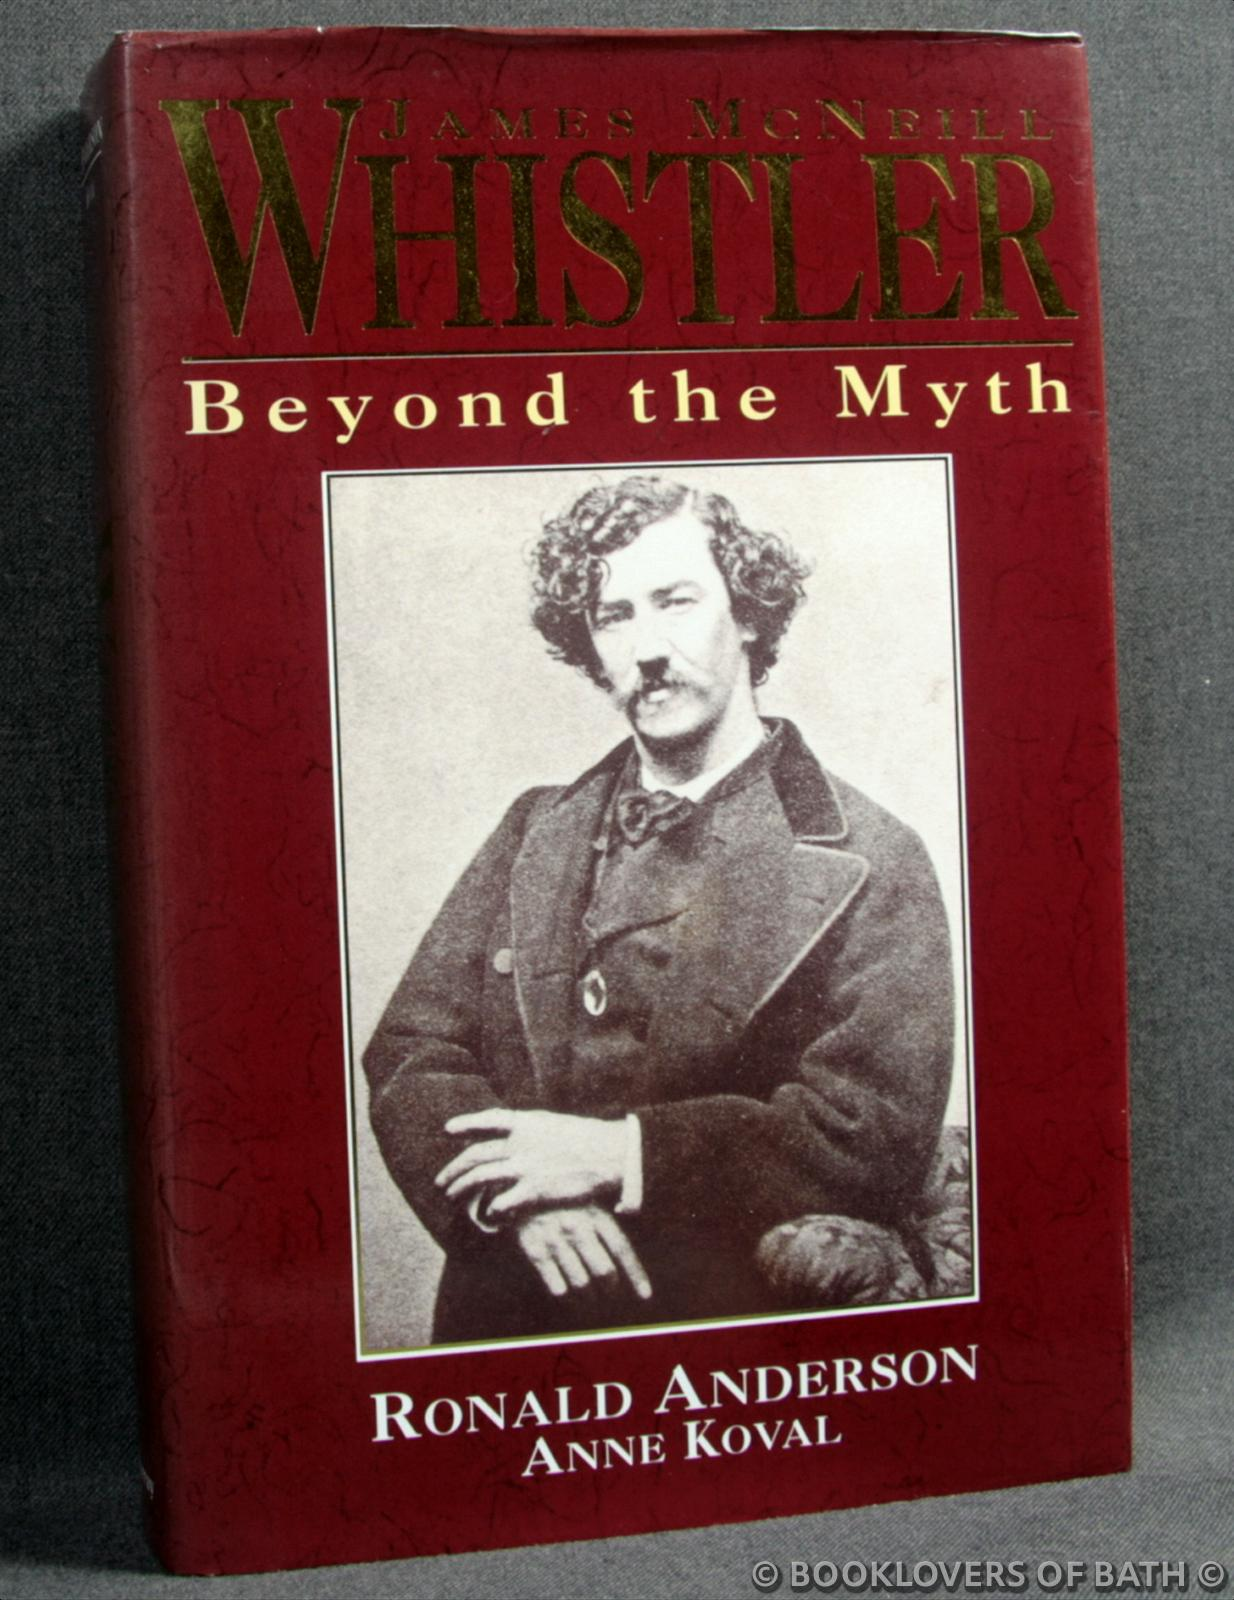 James McNeill Whistler: Beyond the Myth - Ronald Anderson & Anne Koval